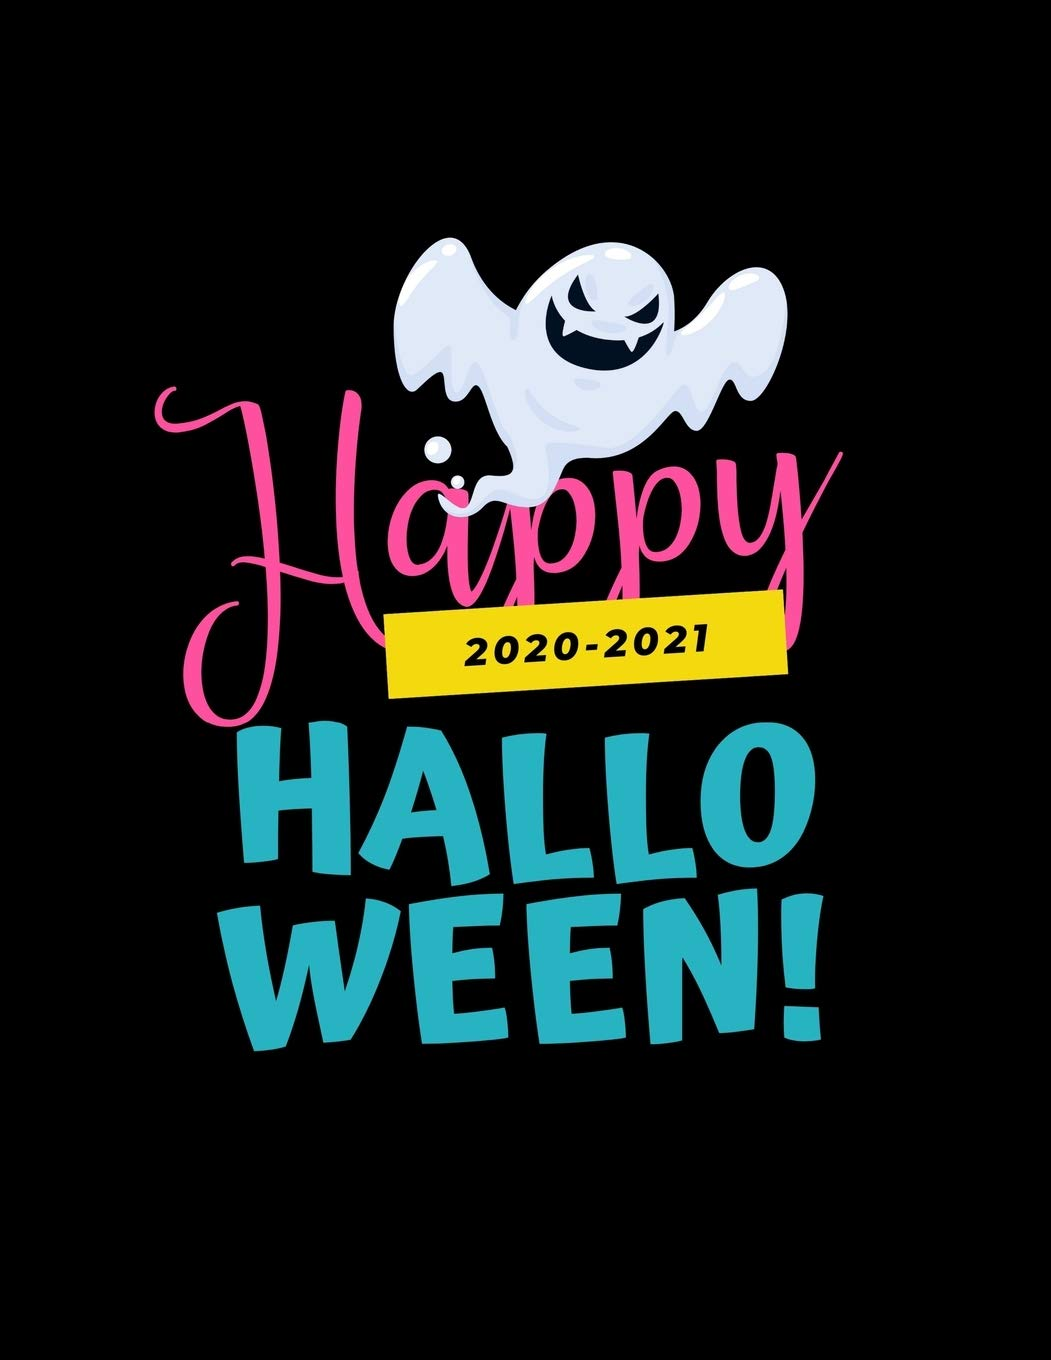 Does Halloween 2020 Include Halloween 2 Buy Happy Halloween: 2020 2021 Planner for Halloween, 2 Year